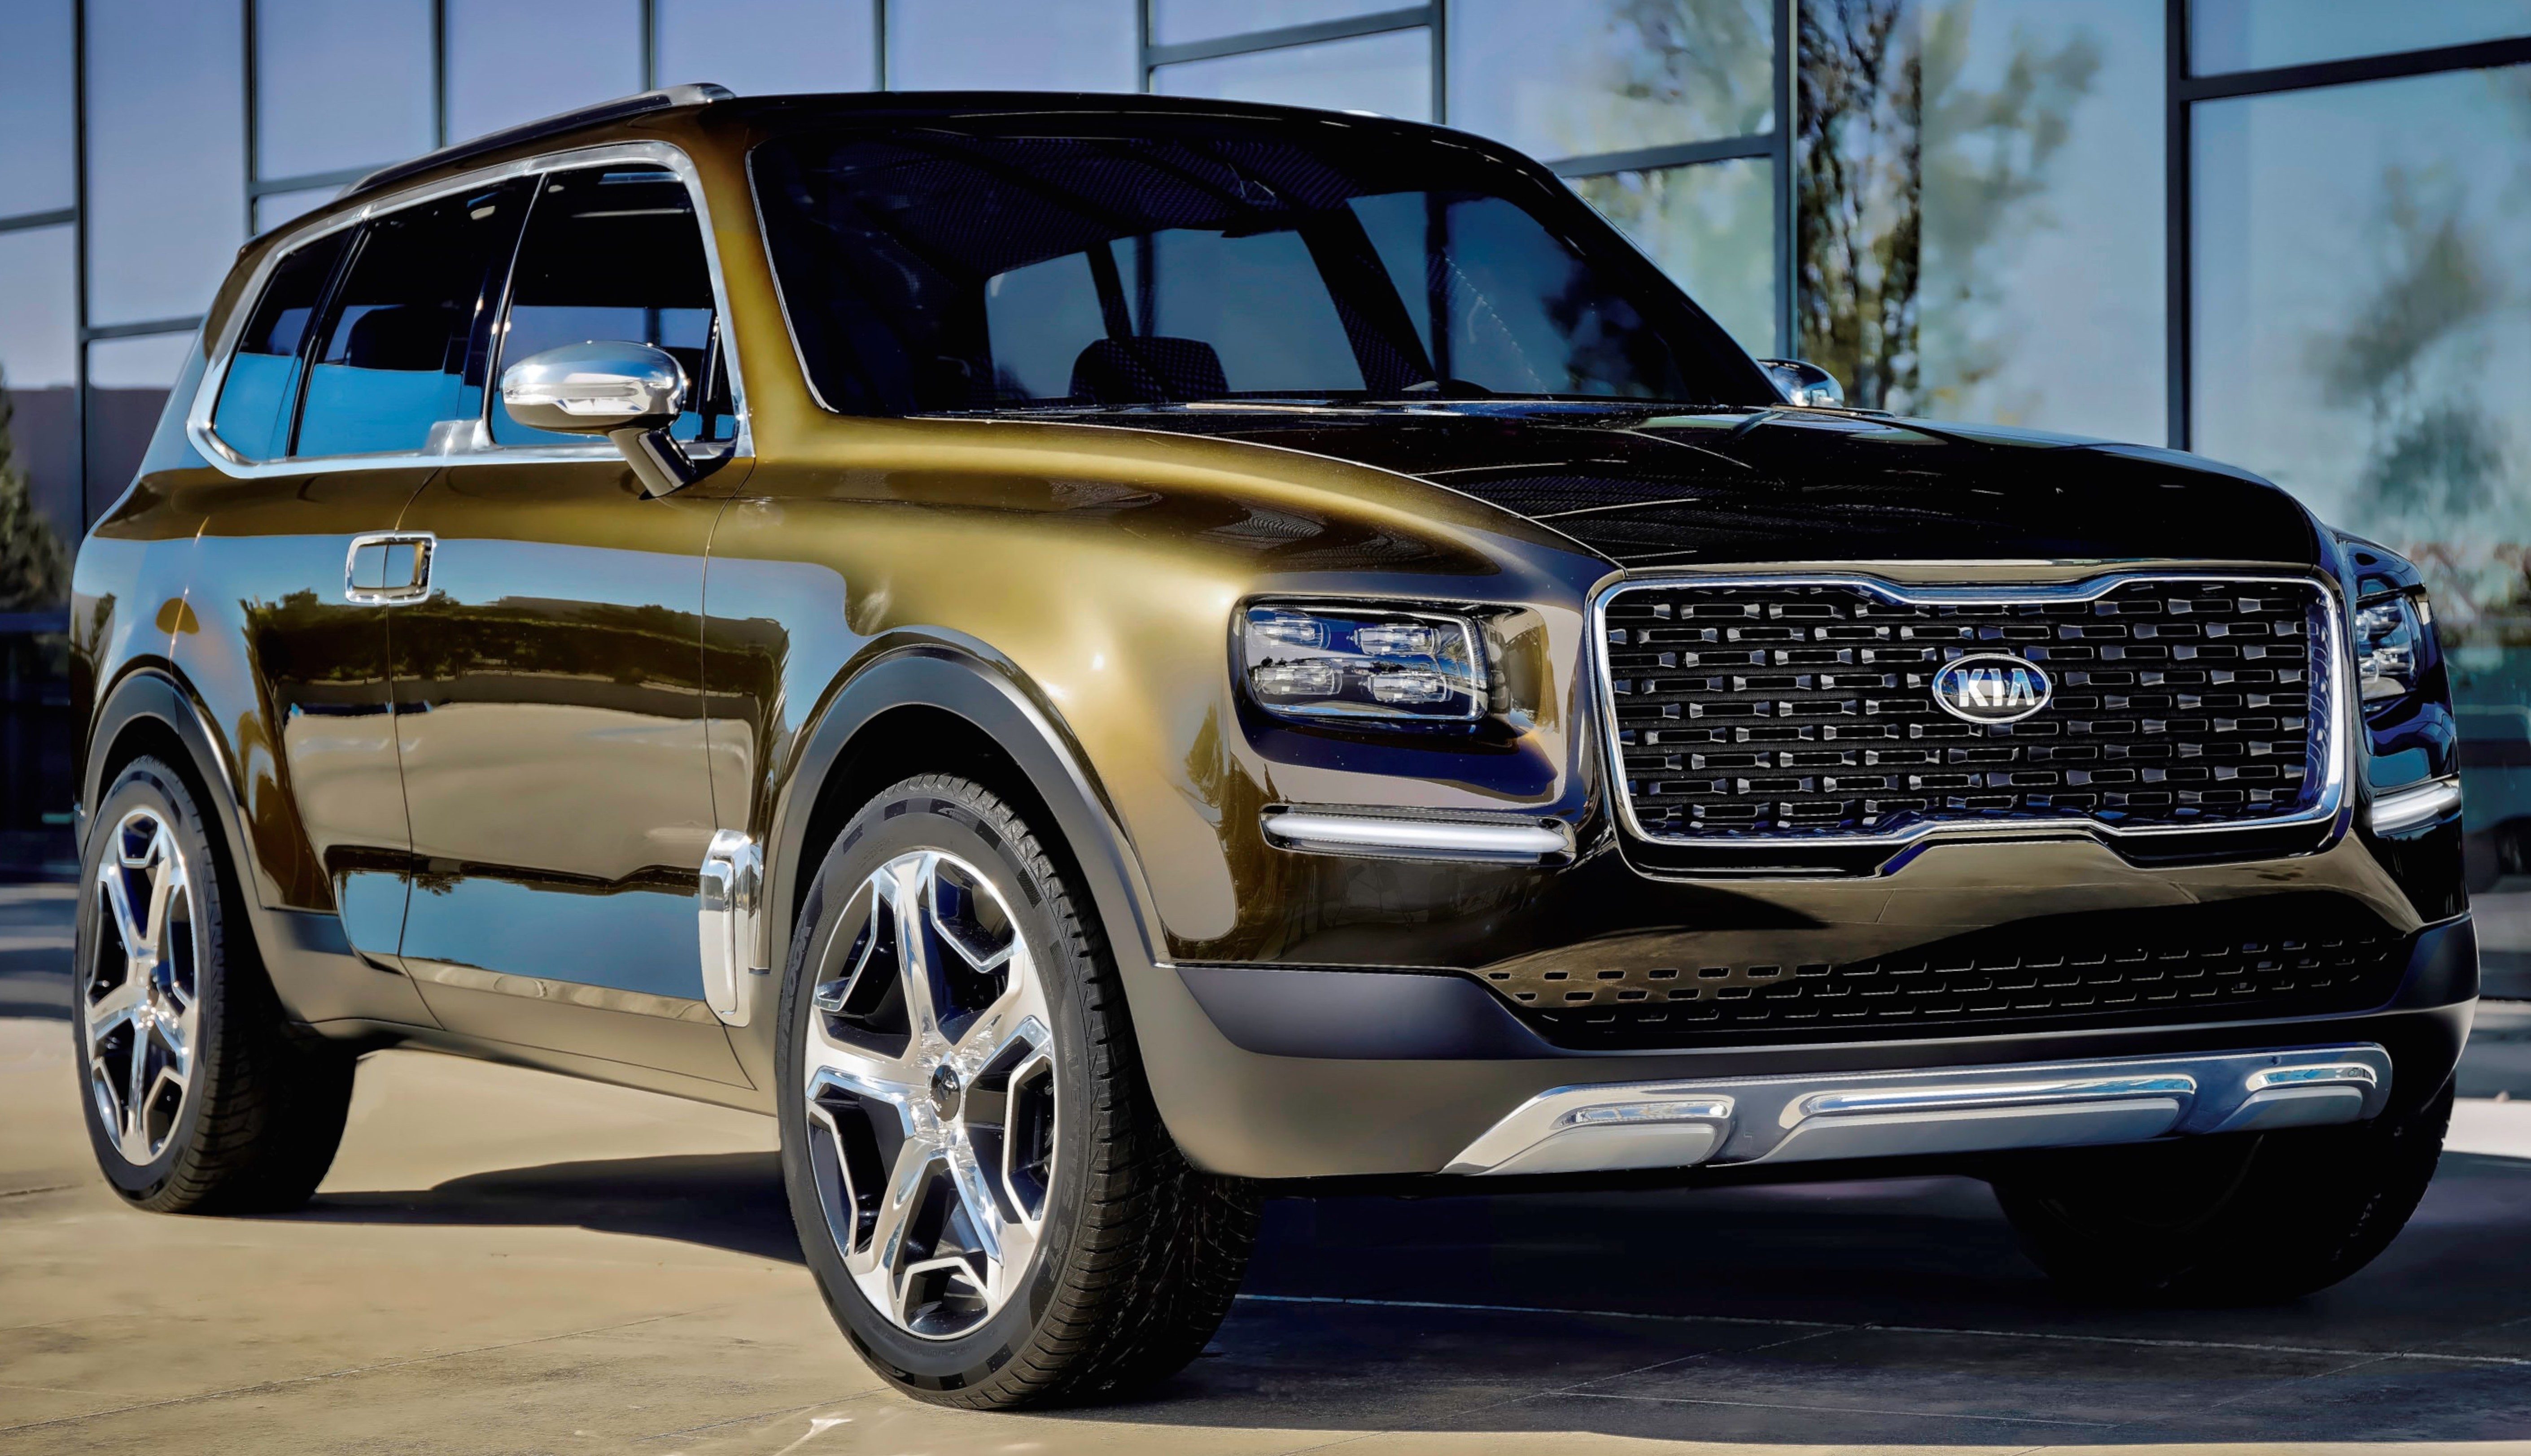 2018 kia telluride. Beautiful Telluride With 2018 Kia Telluride